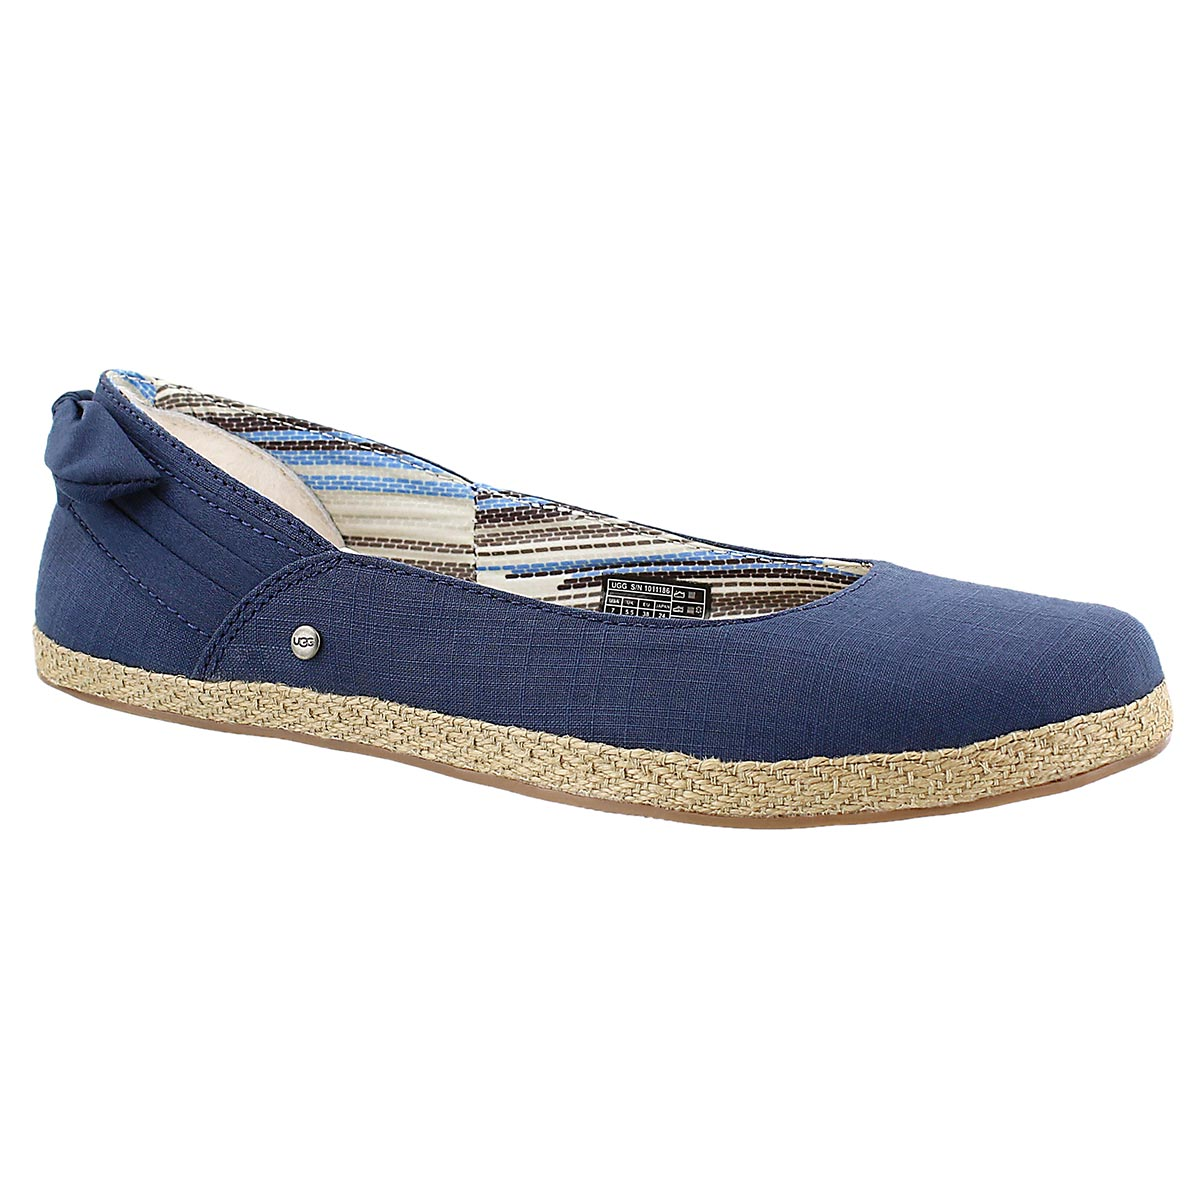 Women's PERRIE navy slip on espadrilles